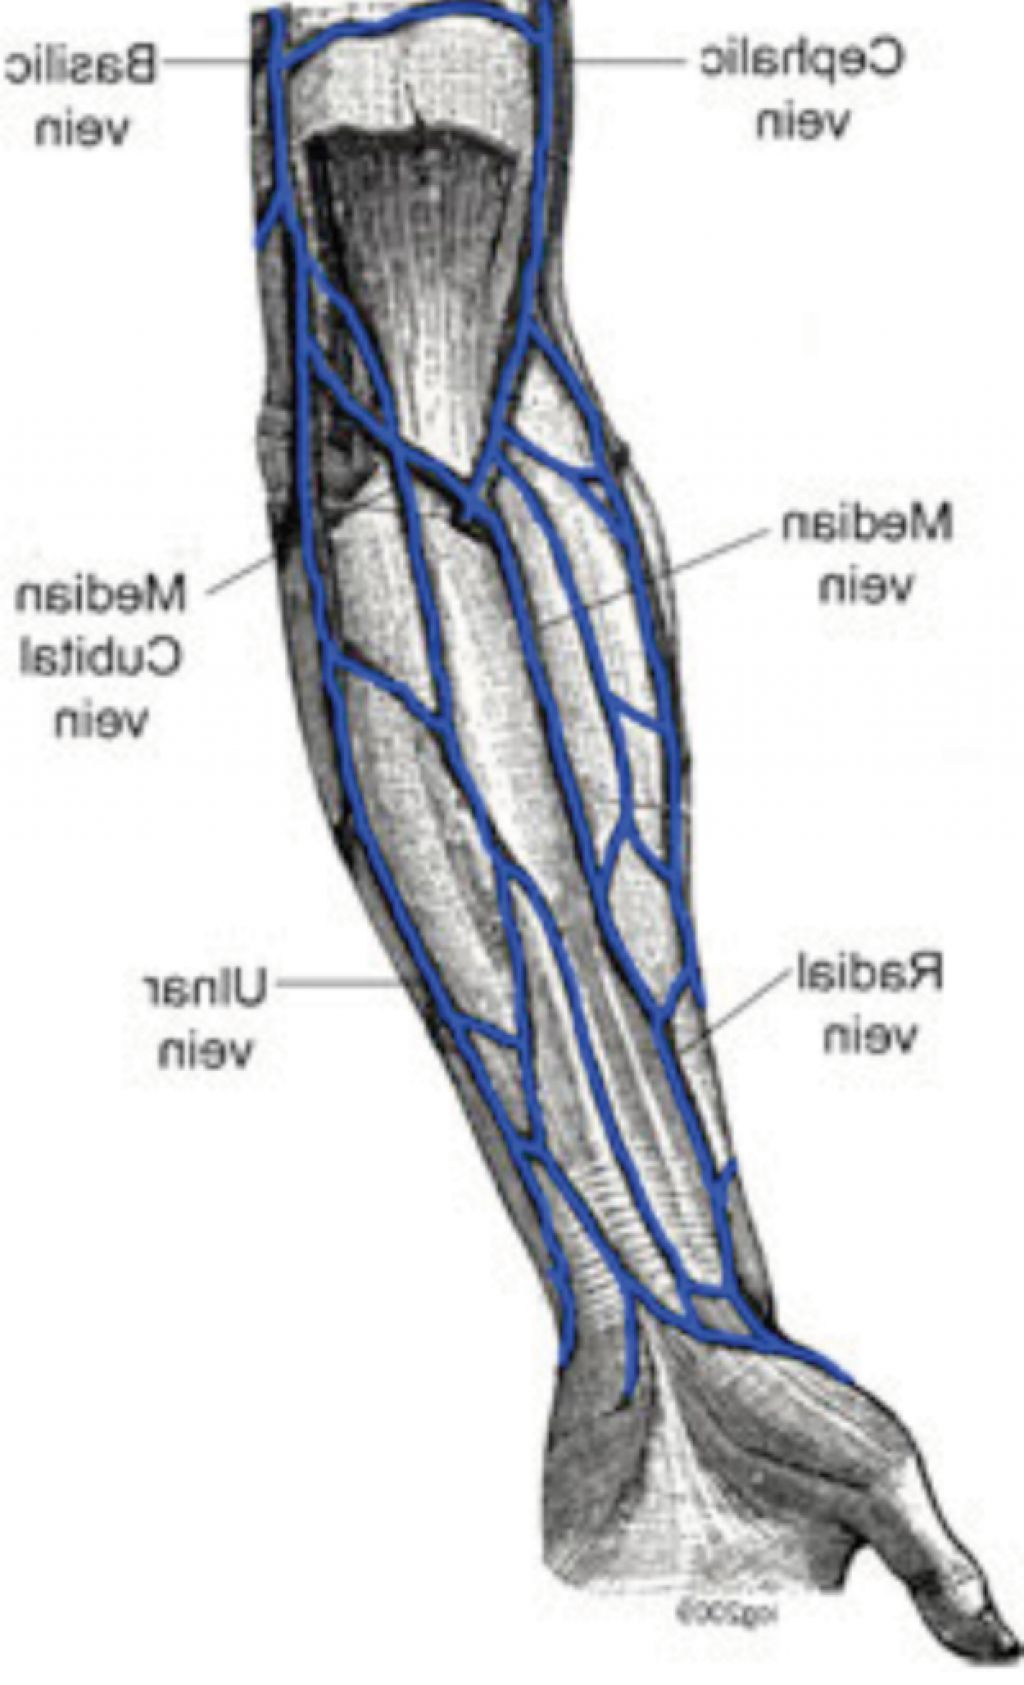 Upper Arm Vein Anatomy | Characters | Pinterest | Anatomy, Anatomy ...